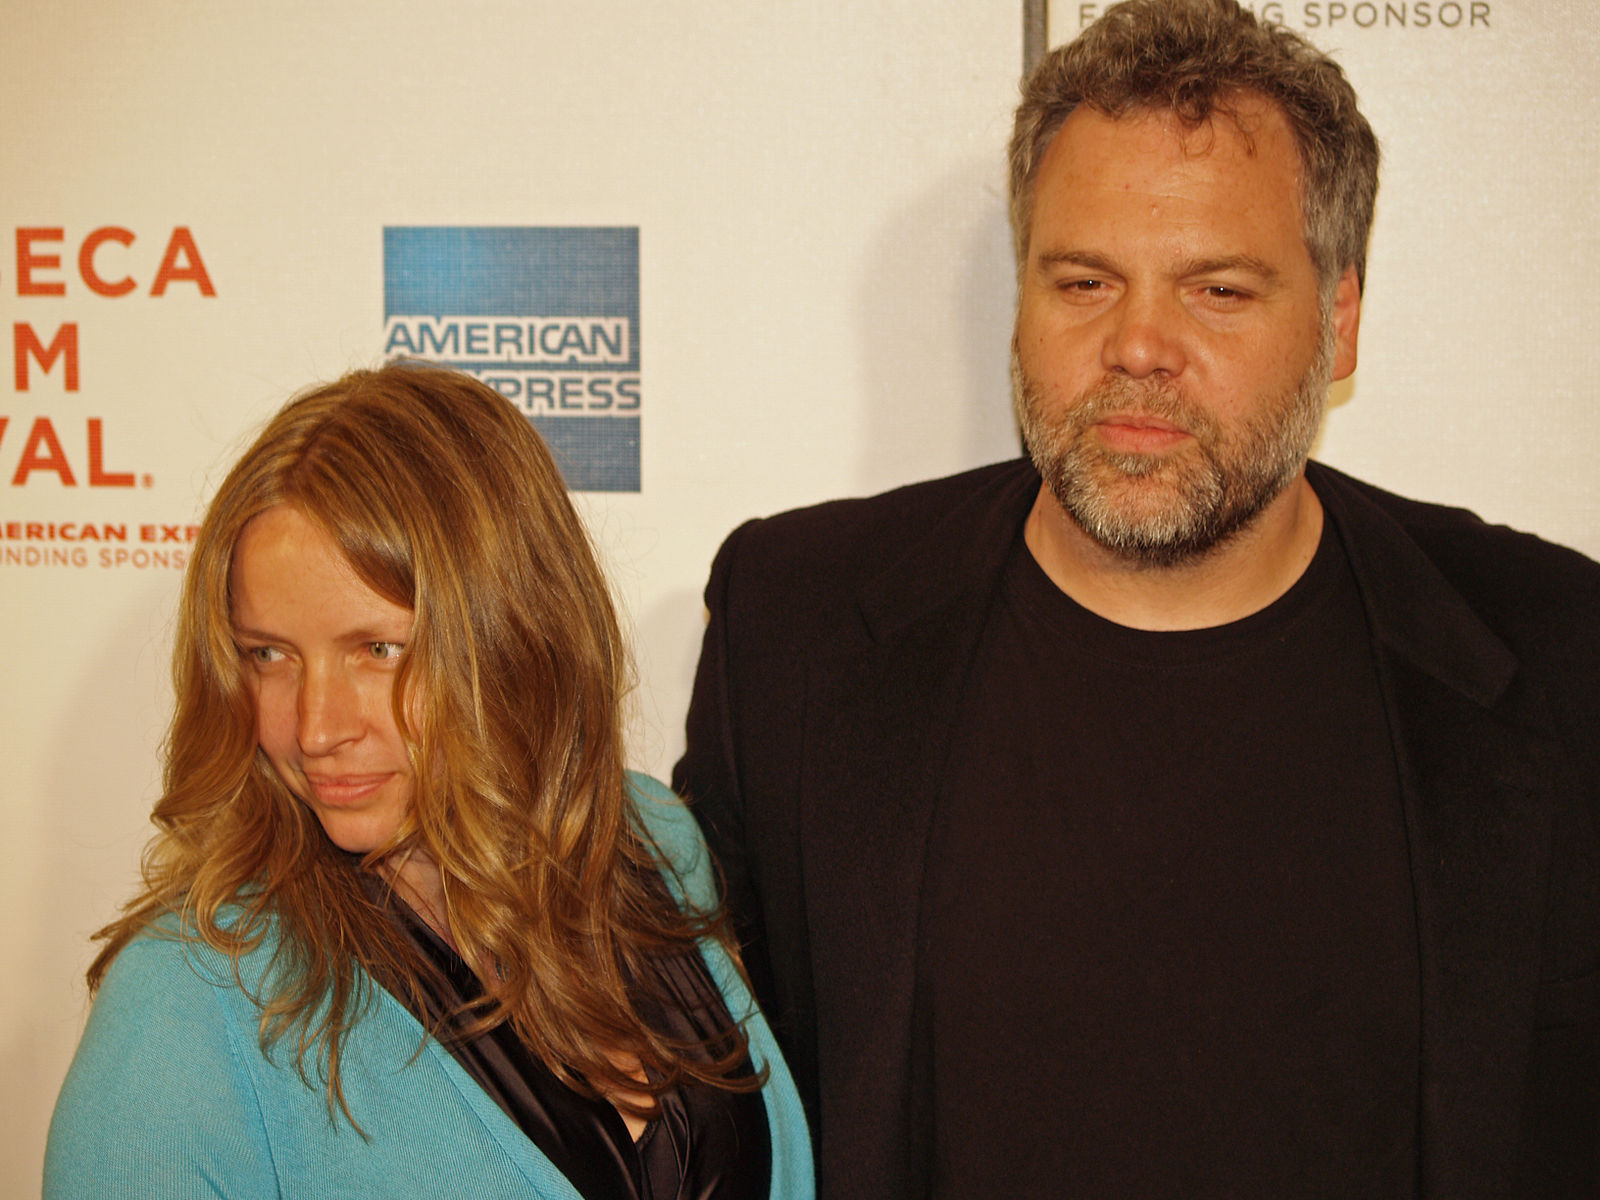 Law and Order, Vincent D'Onofrio, video marketing, video sales